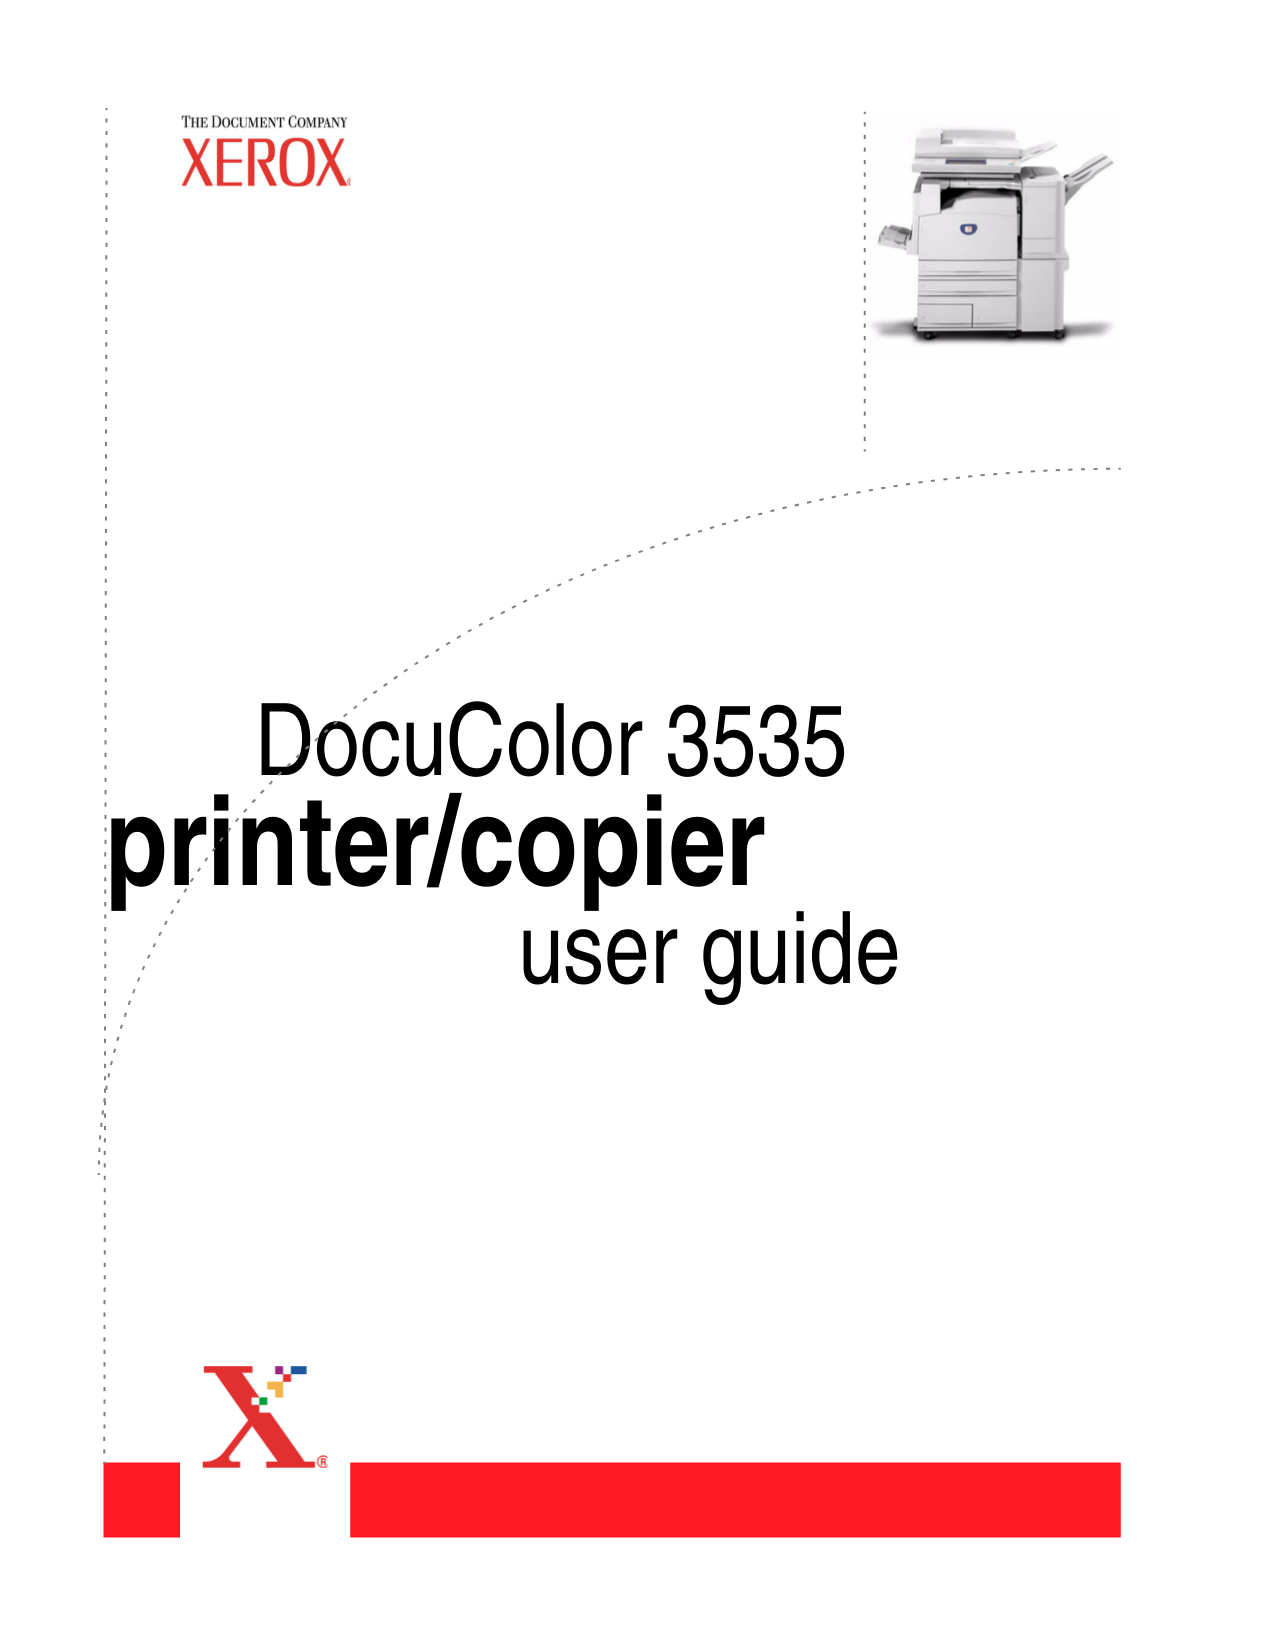 Docucolor 3535